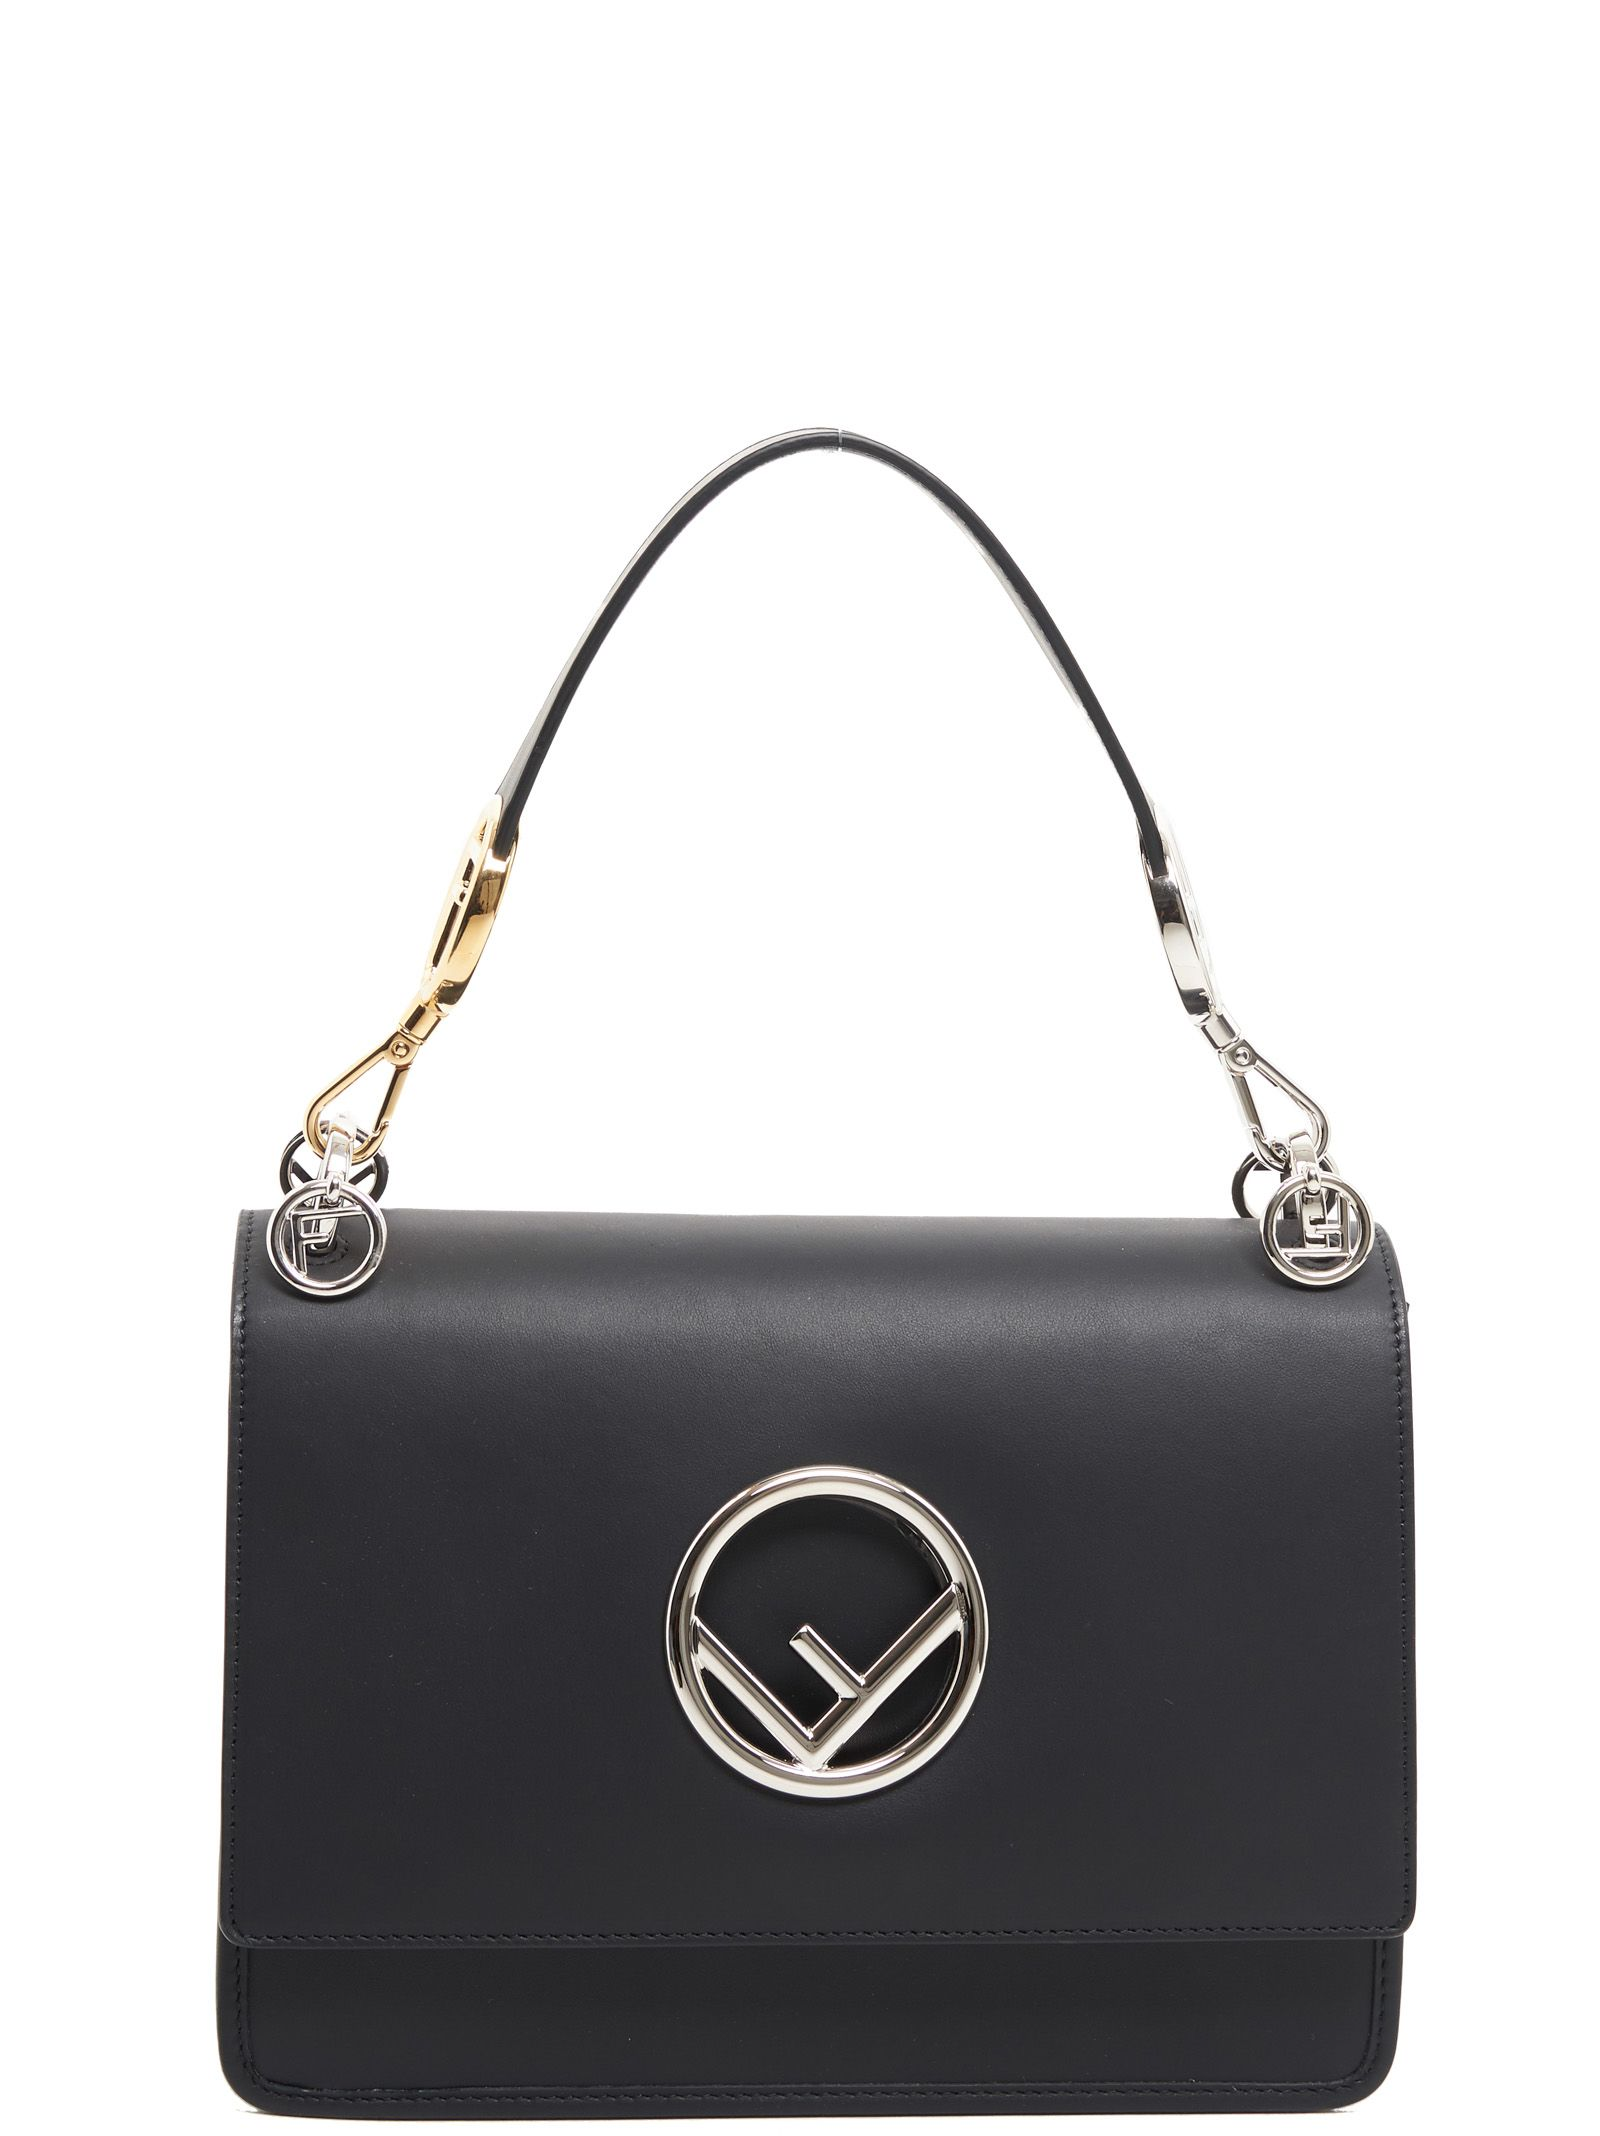 KAN I F BLACK LEATHER HANDBAG WITH LOGO